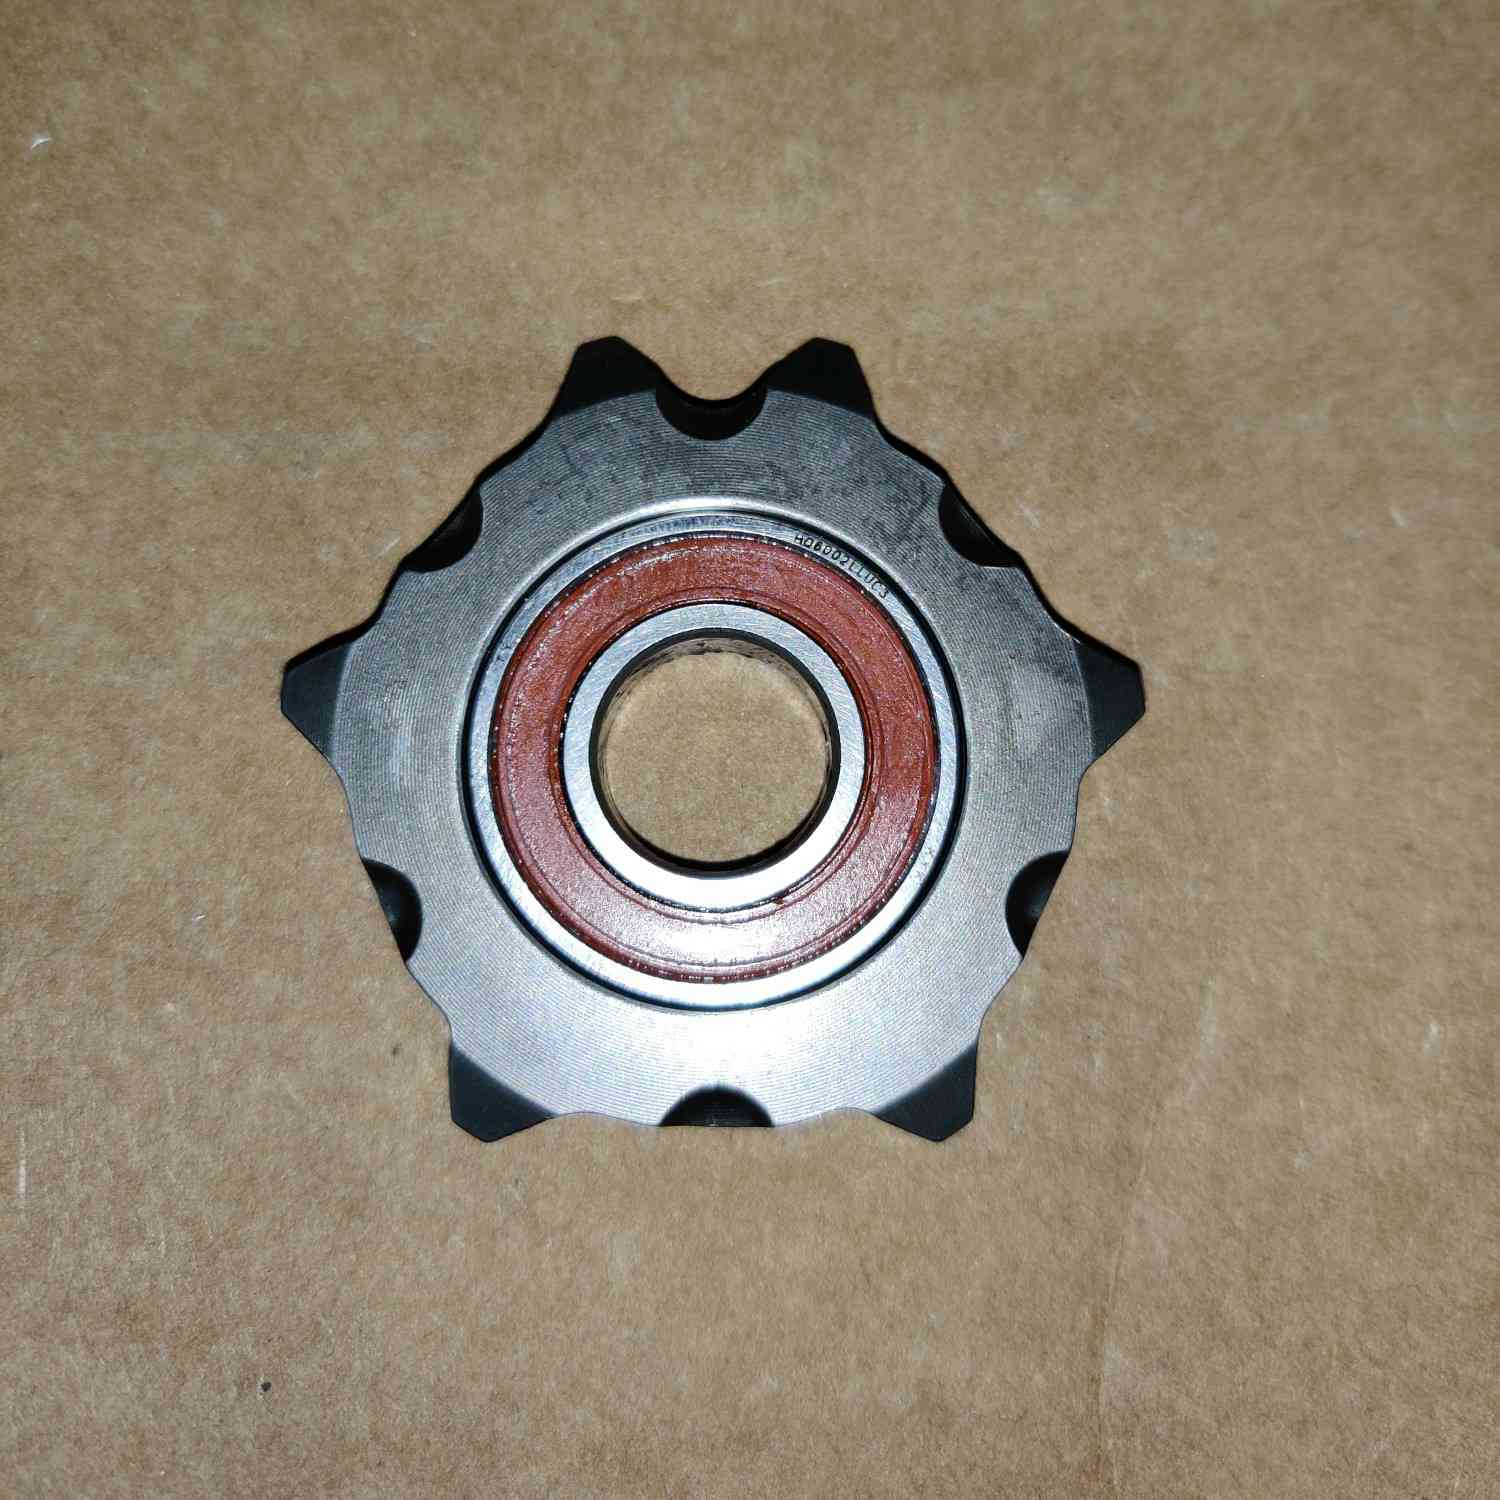 GeoRipper handheld trencher 6-Tooth Nose Sprocket